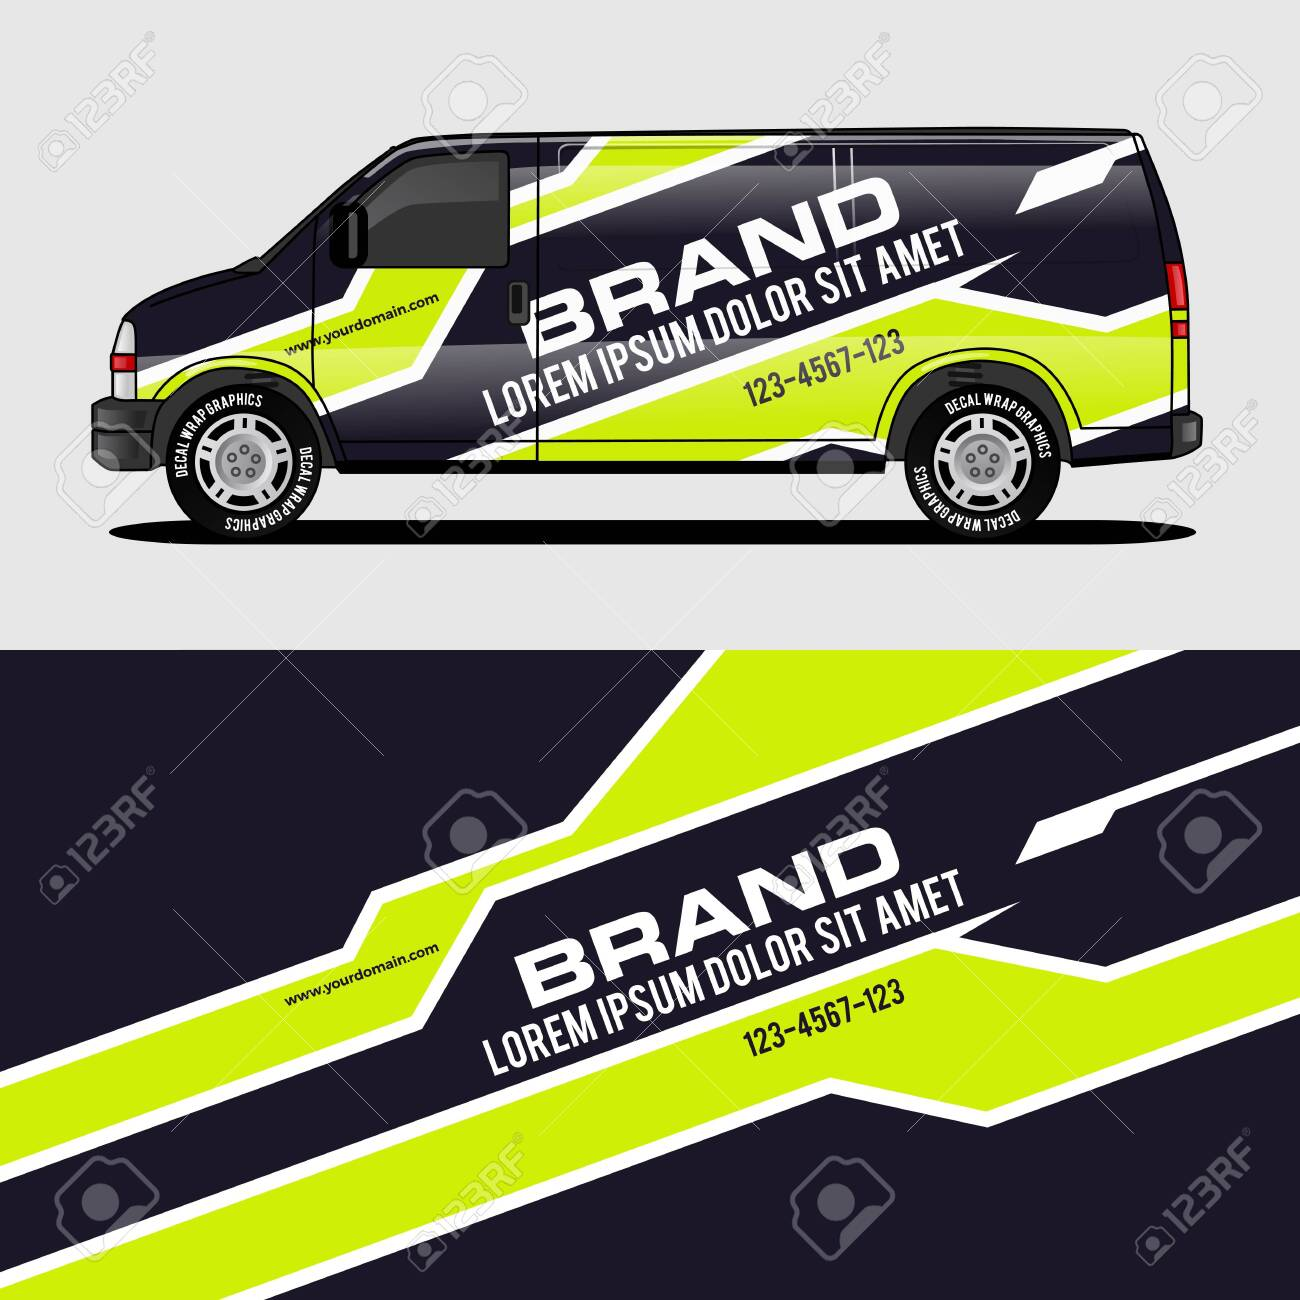 Car livery lime green van wrap design wrapping sticker and decal design for corporate company branding